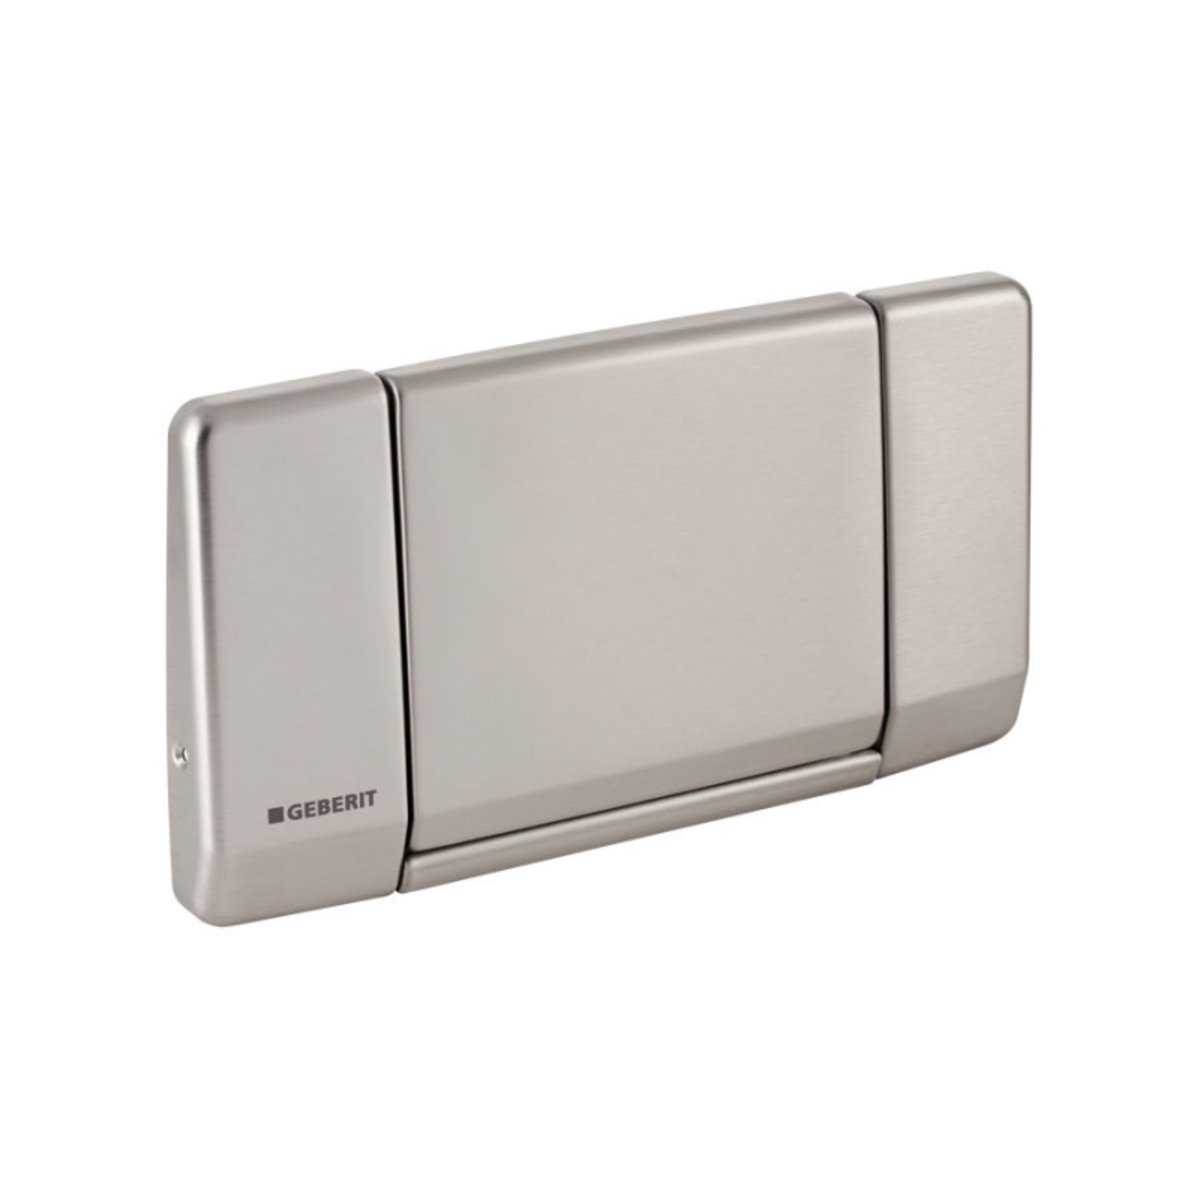 Geberit highline plaque de commande pour r servoir for Geberit products